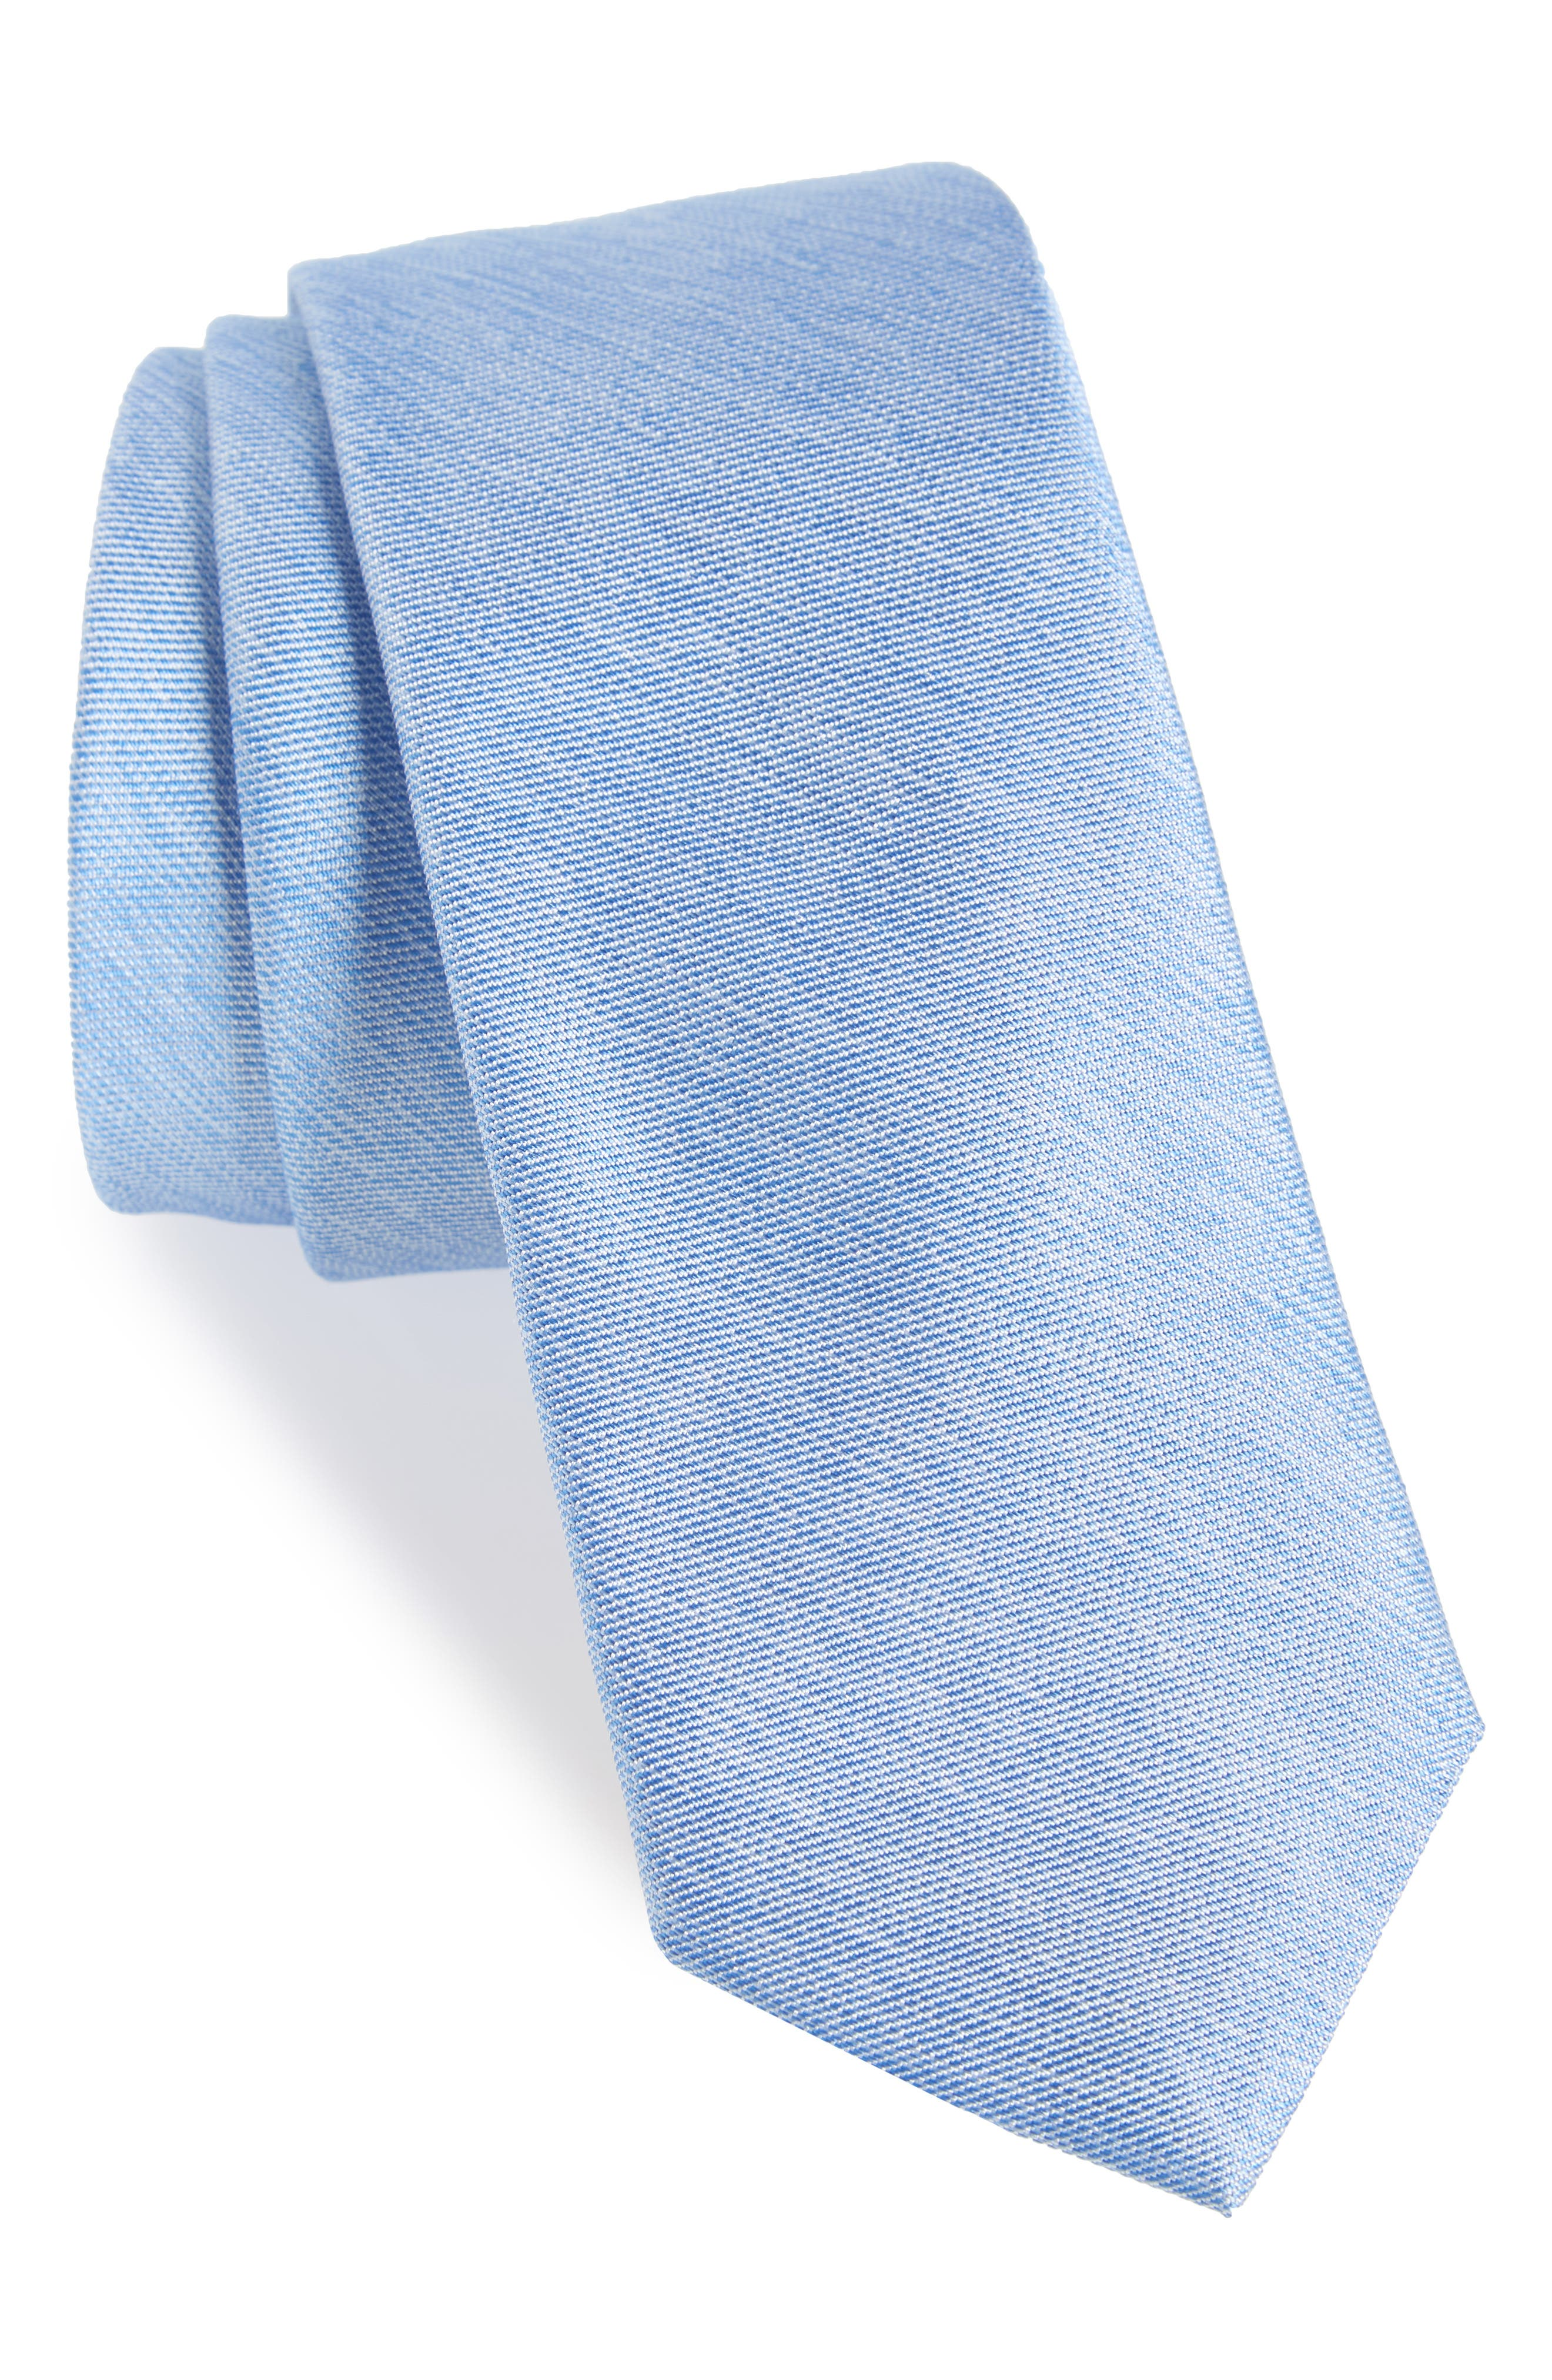 Andrews Solid Skinny Silk Tie,                             Main thumbnail 1, color,                             BLUE